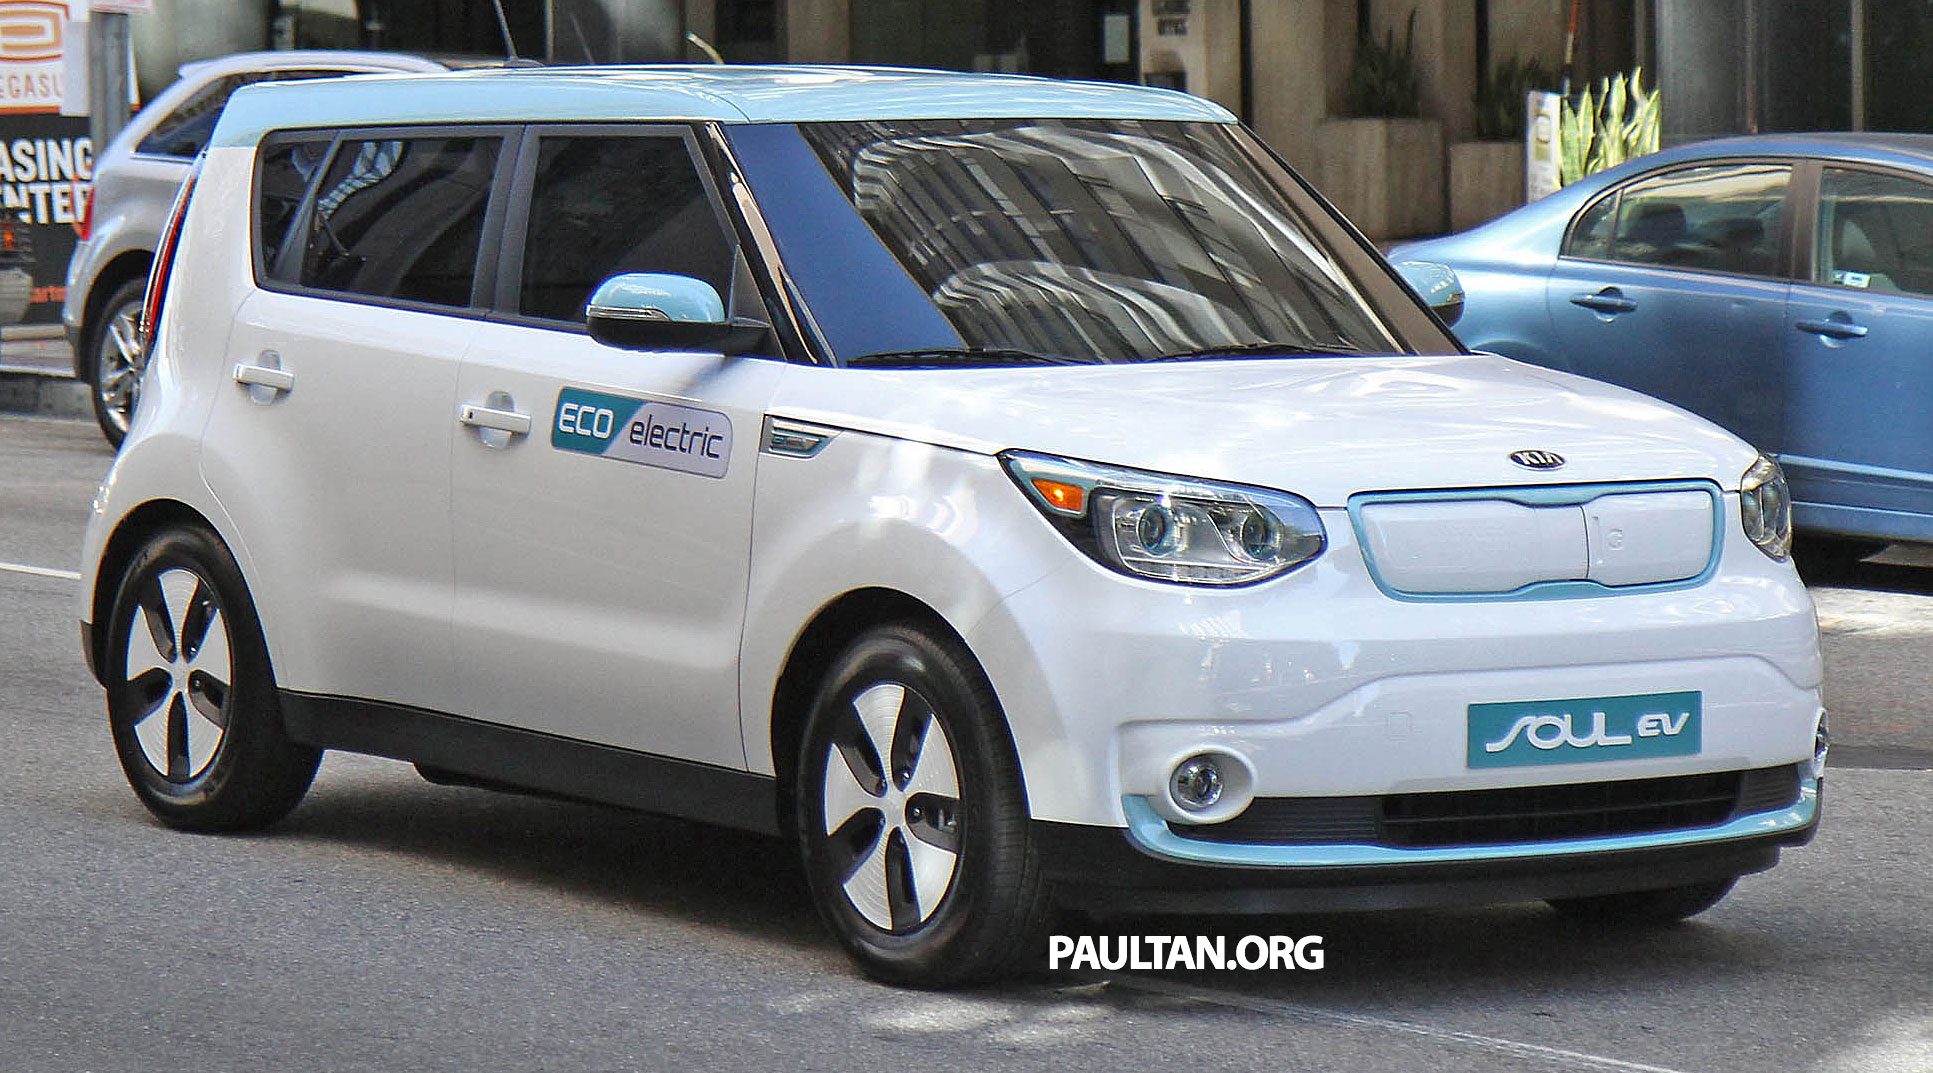 spyshots kia soul ev completely undisguised image 225637. Black Bedroom Furniture Sets. Home Design Ideas